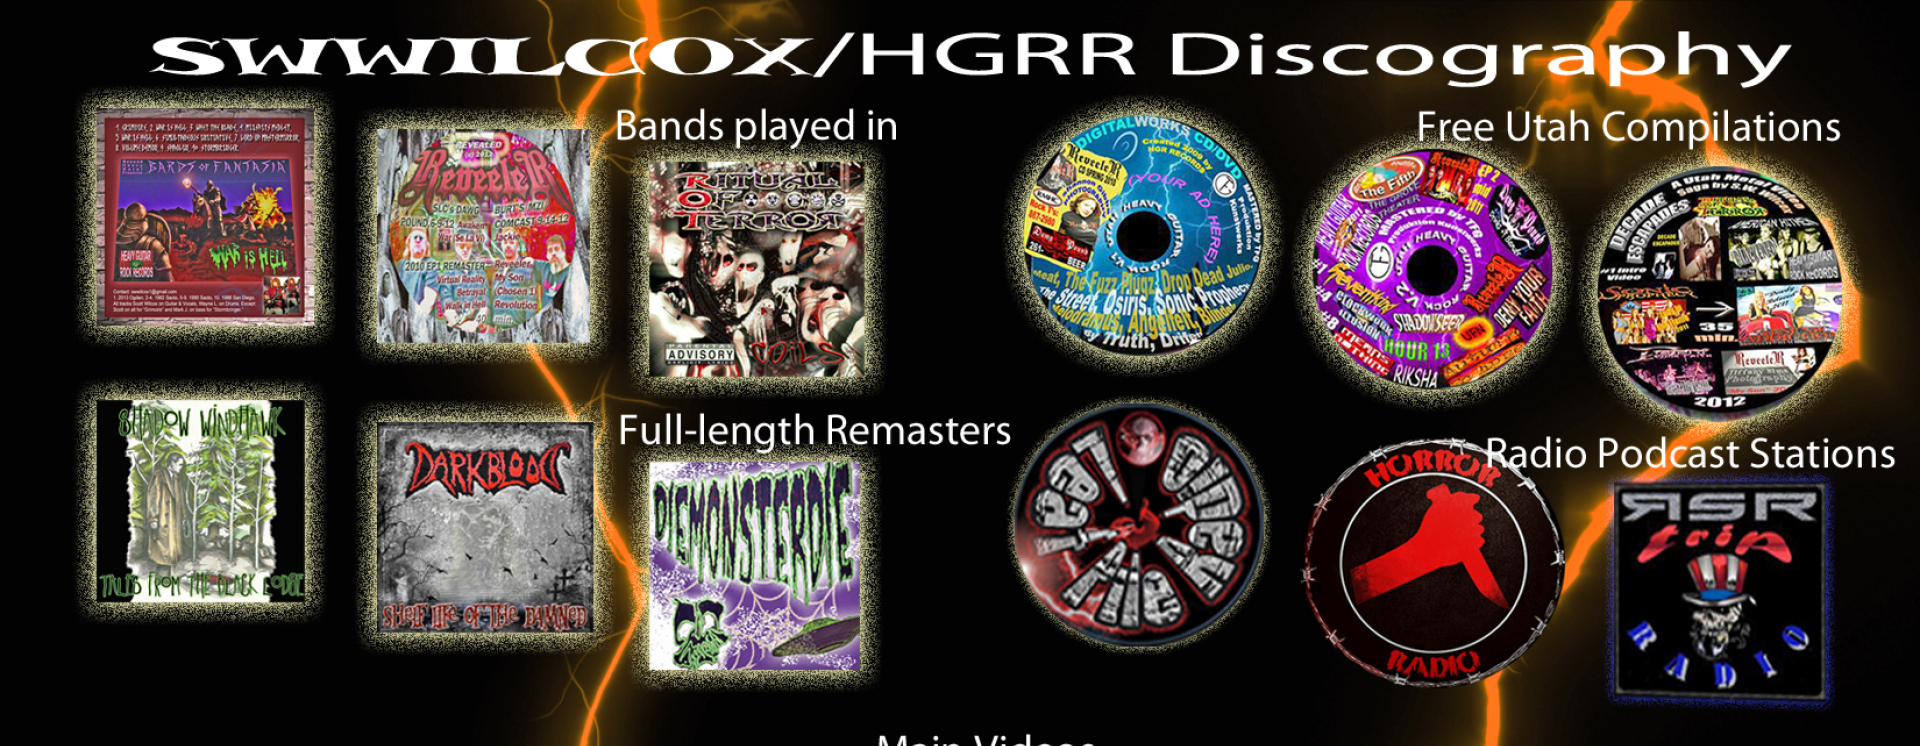 1433427845 swwilcox hgrr discography 2 copy copy